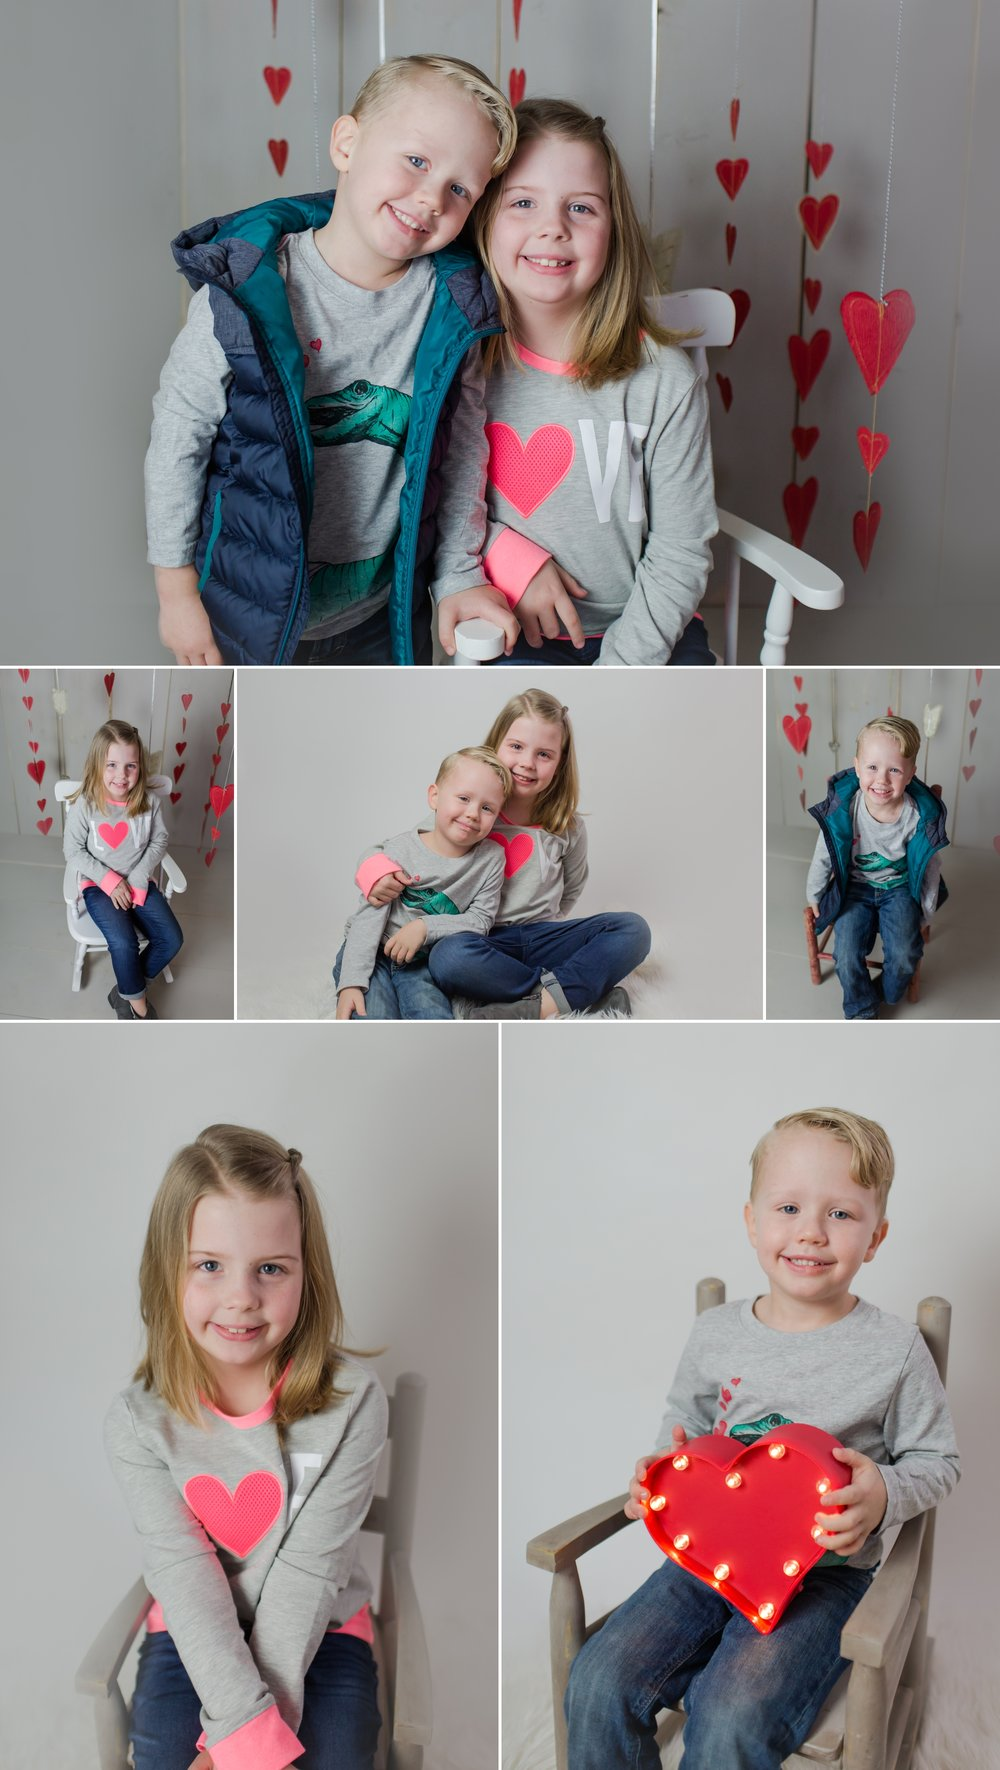 valentine_mini_sessions_mini_session_photography_sibling_baby_toddler_props_hearts_ideas 1